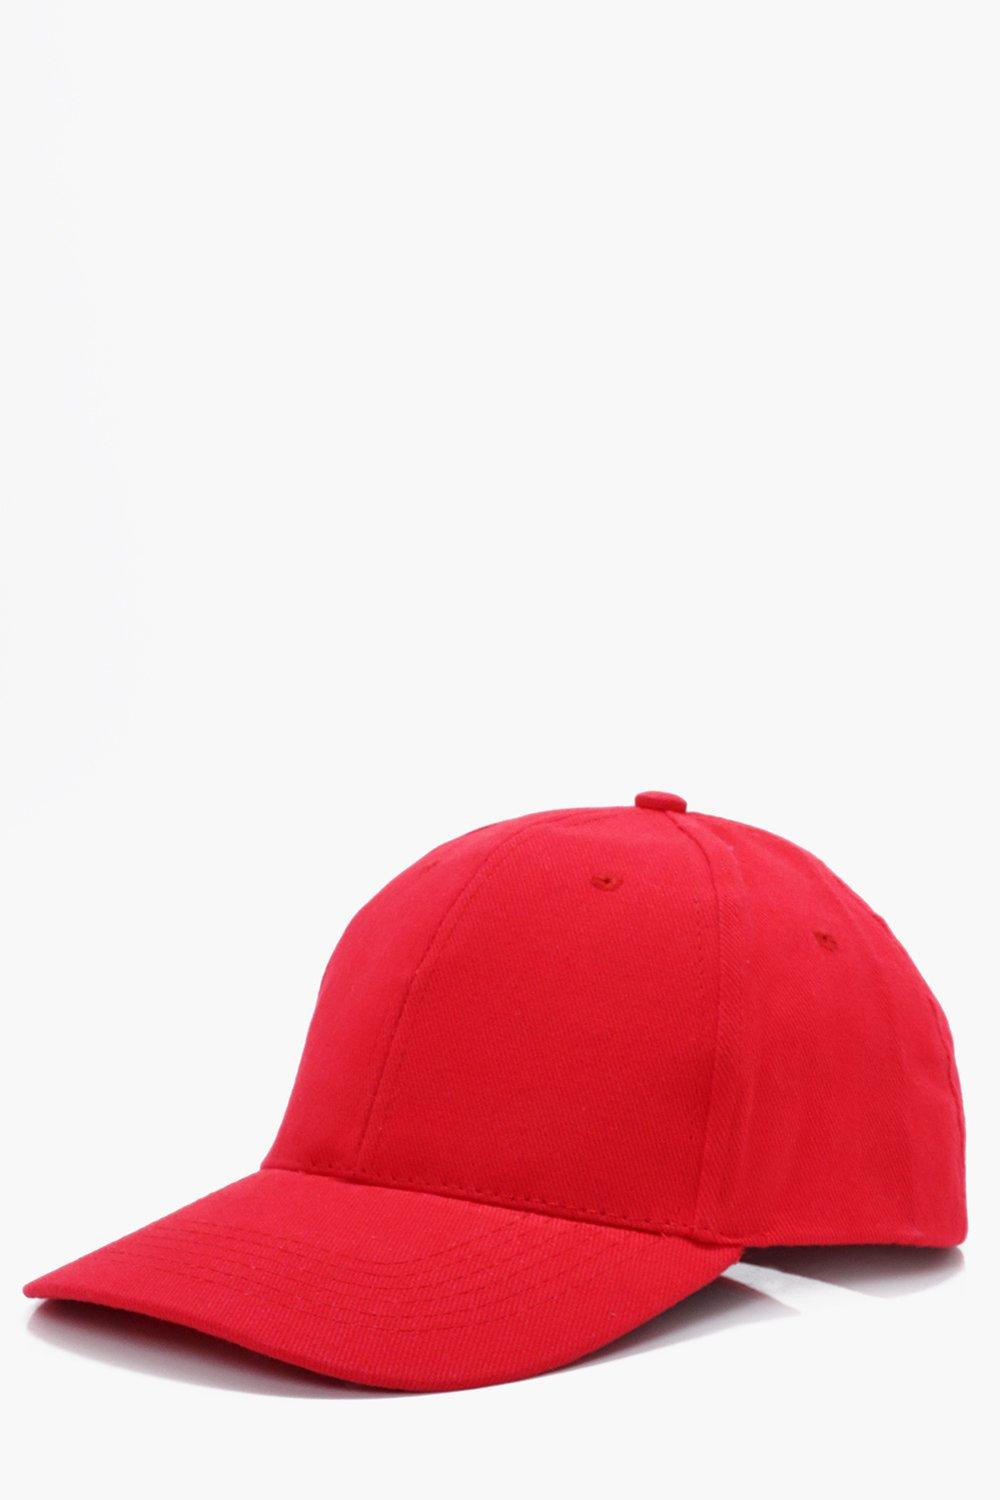 Cap - red - Basic Cap - red